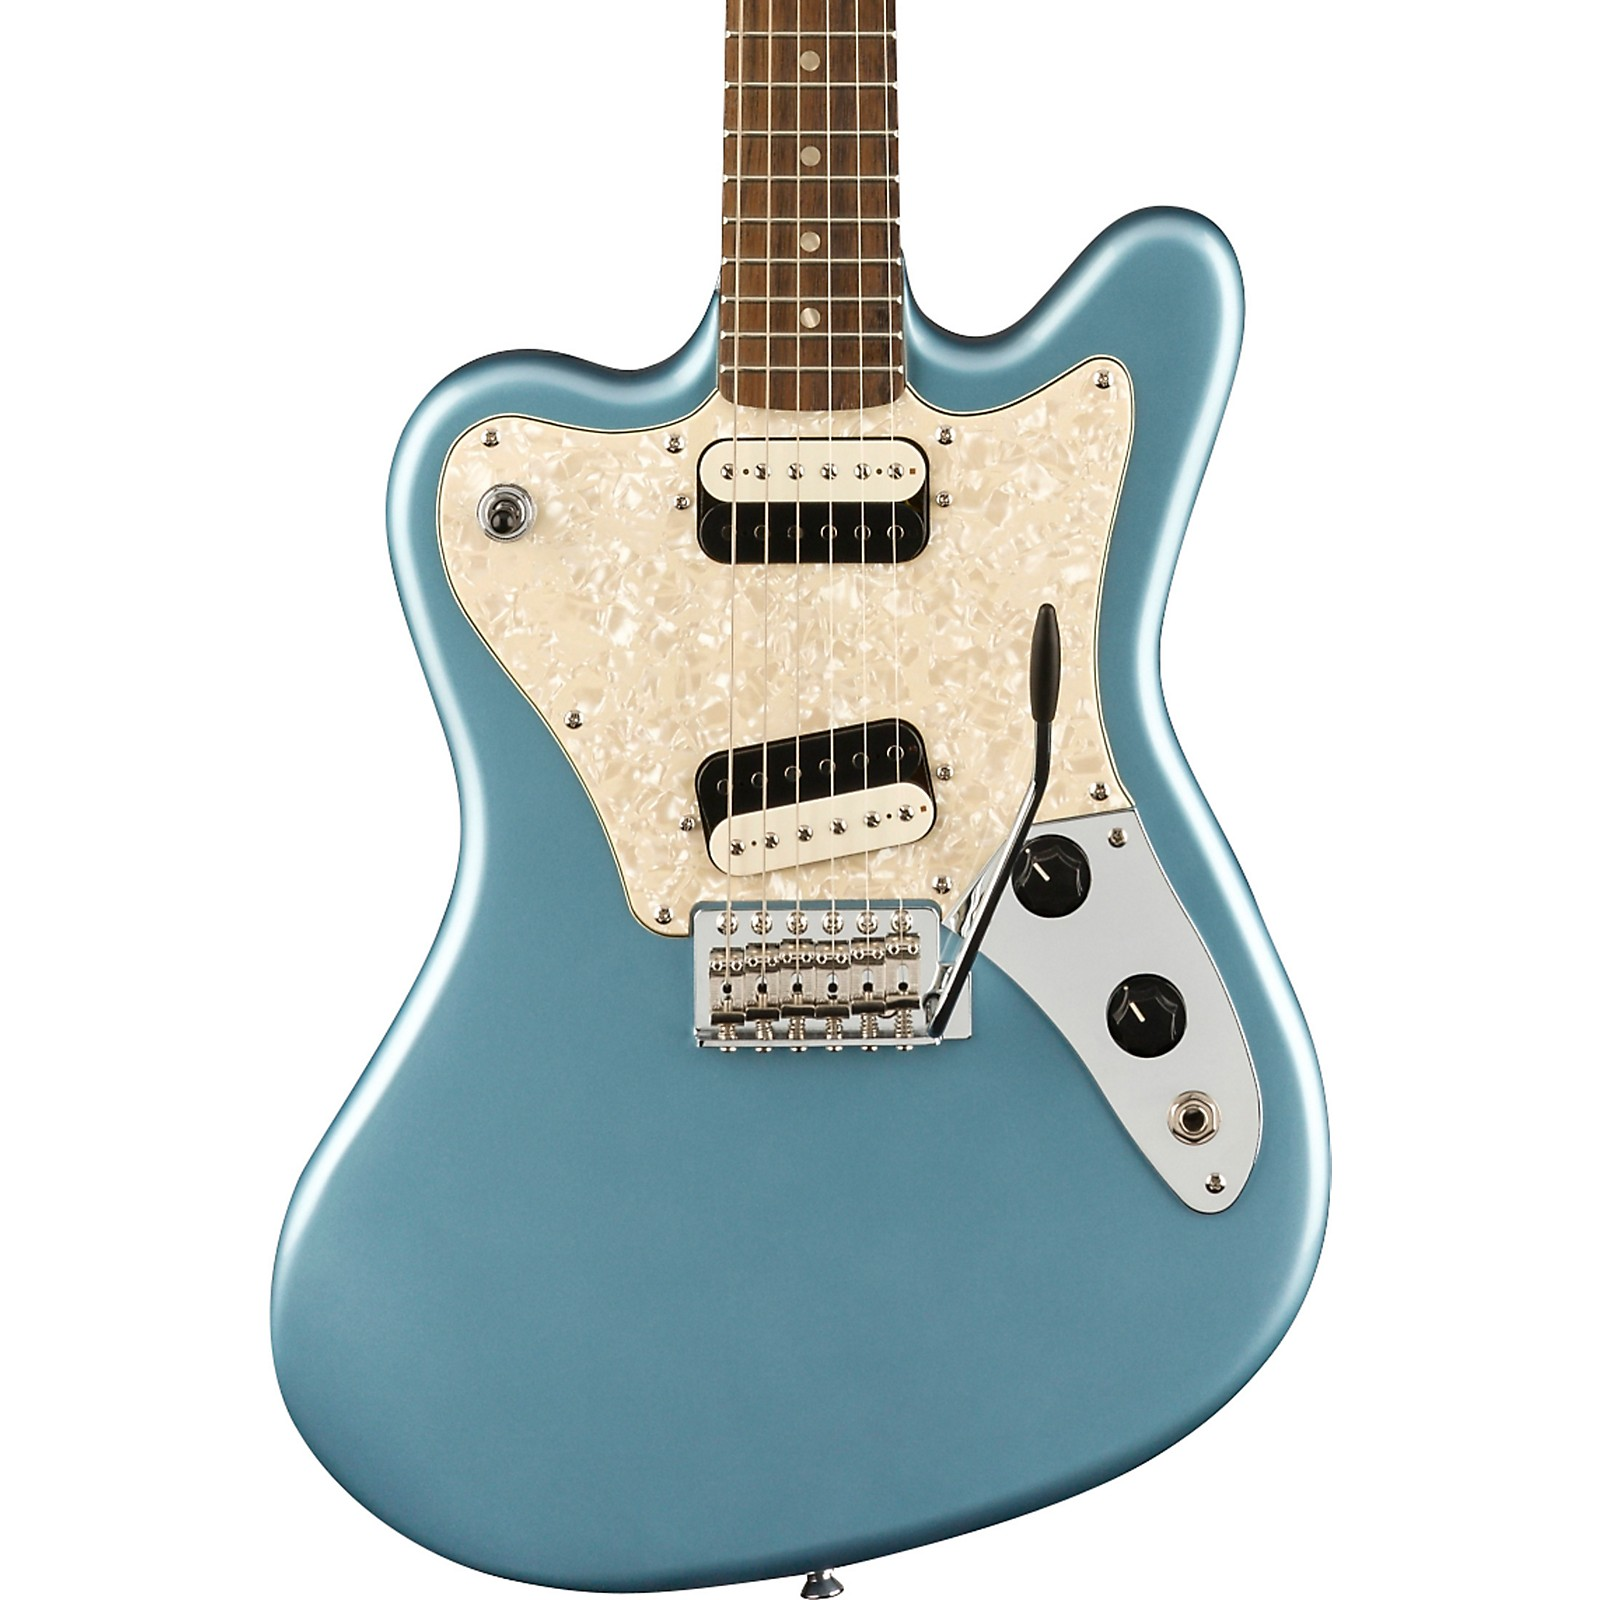 Squier Paranormal Series Super-Sonic Electric Guitar